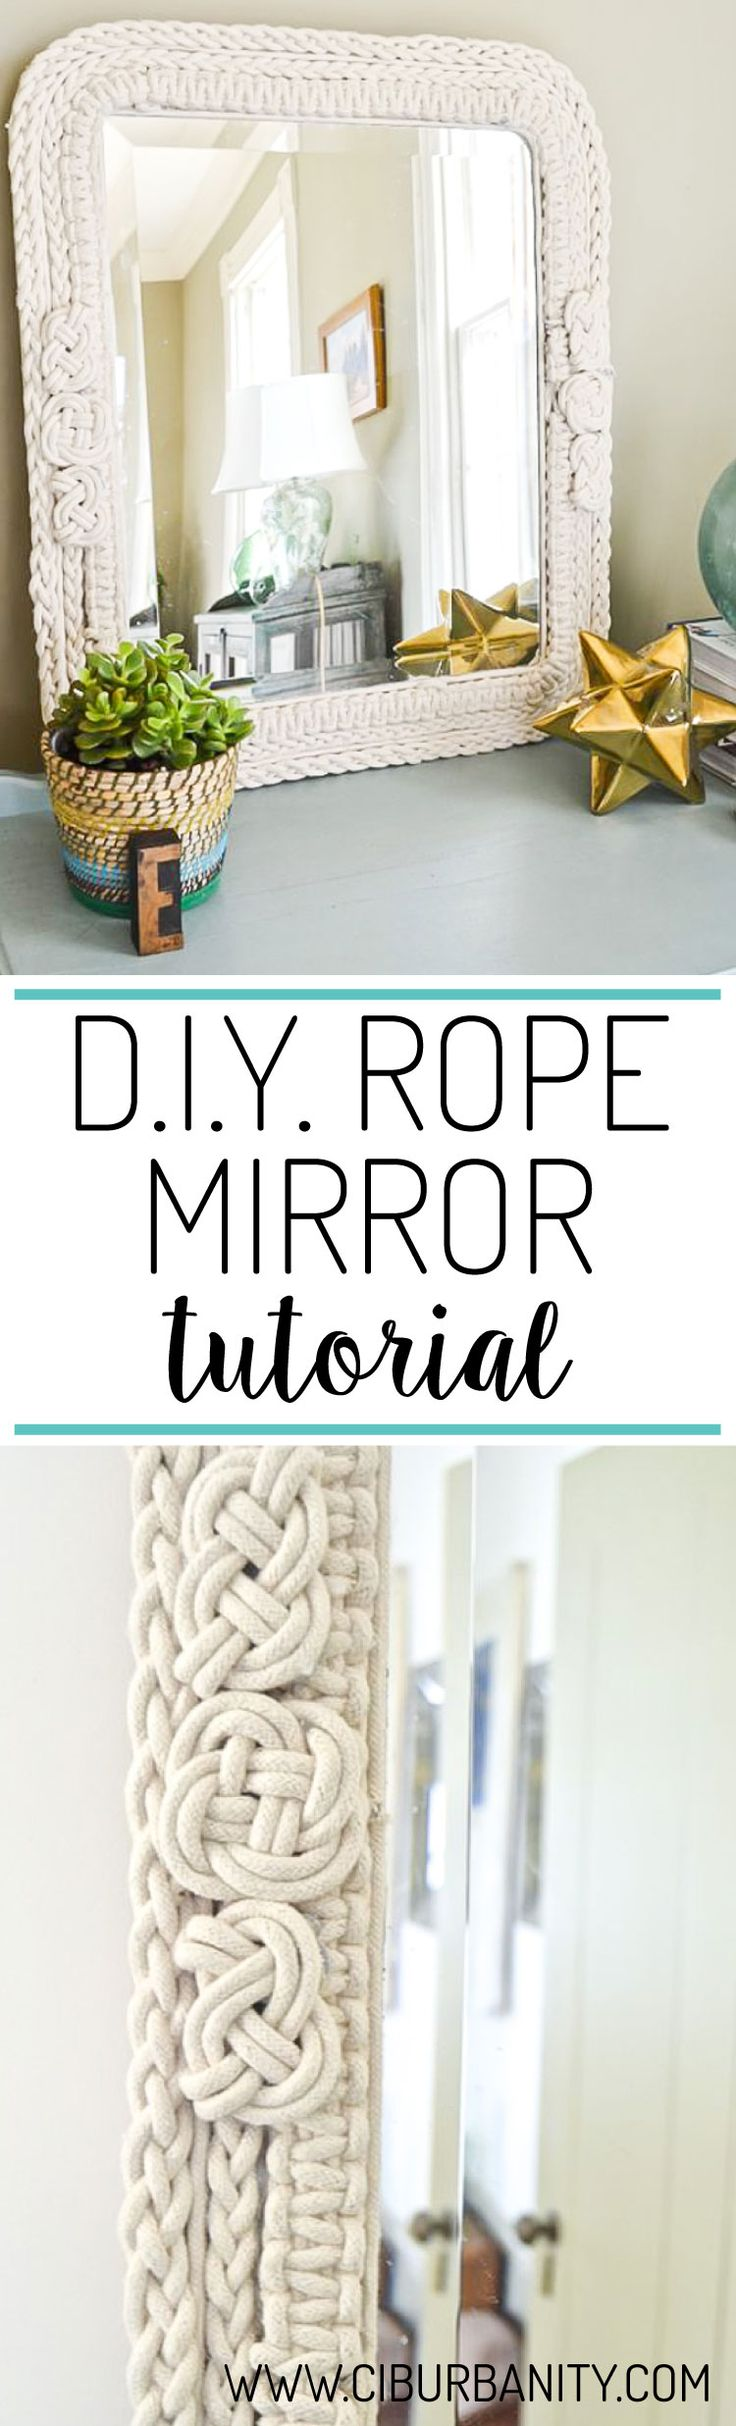 Wow!  This DIY rope mirror is stunning and looks high-end, but was made with materials from the Dollar Store.  GENIUS!